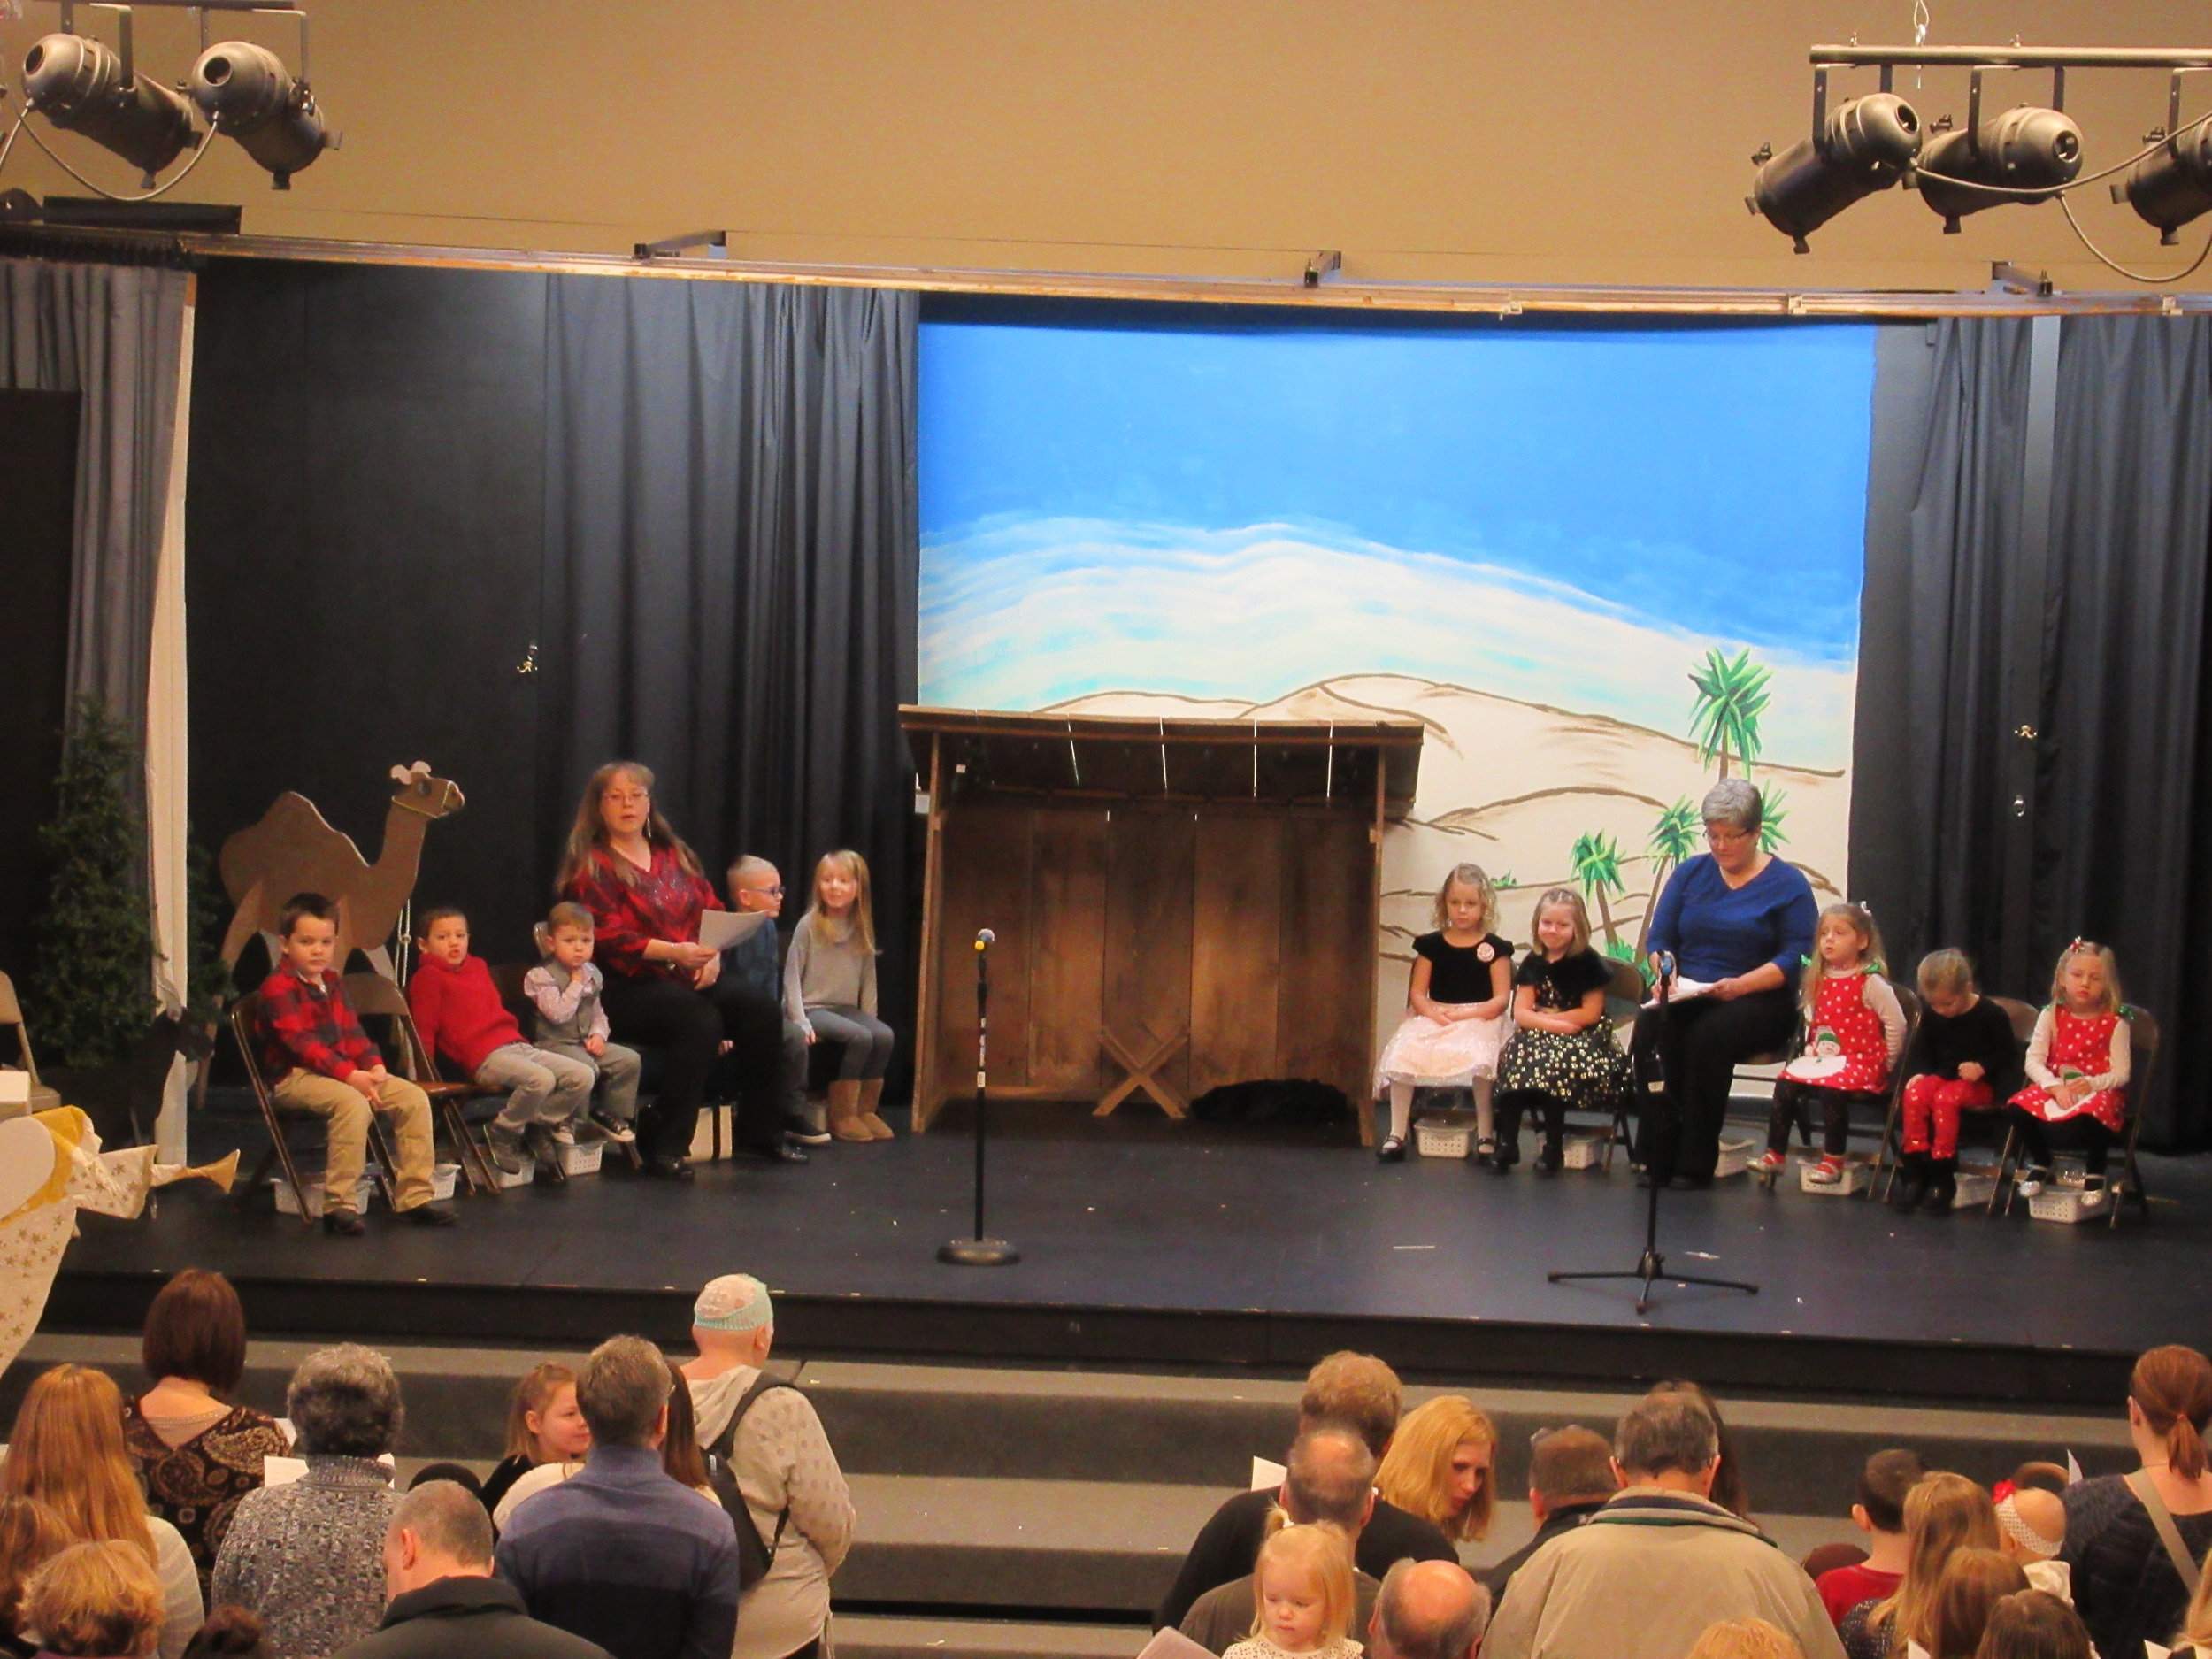 Children_s Christmas Program 4.JPG